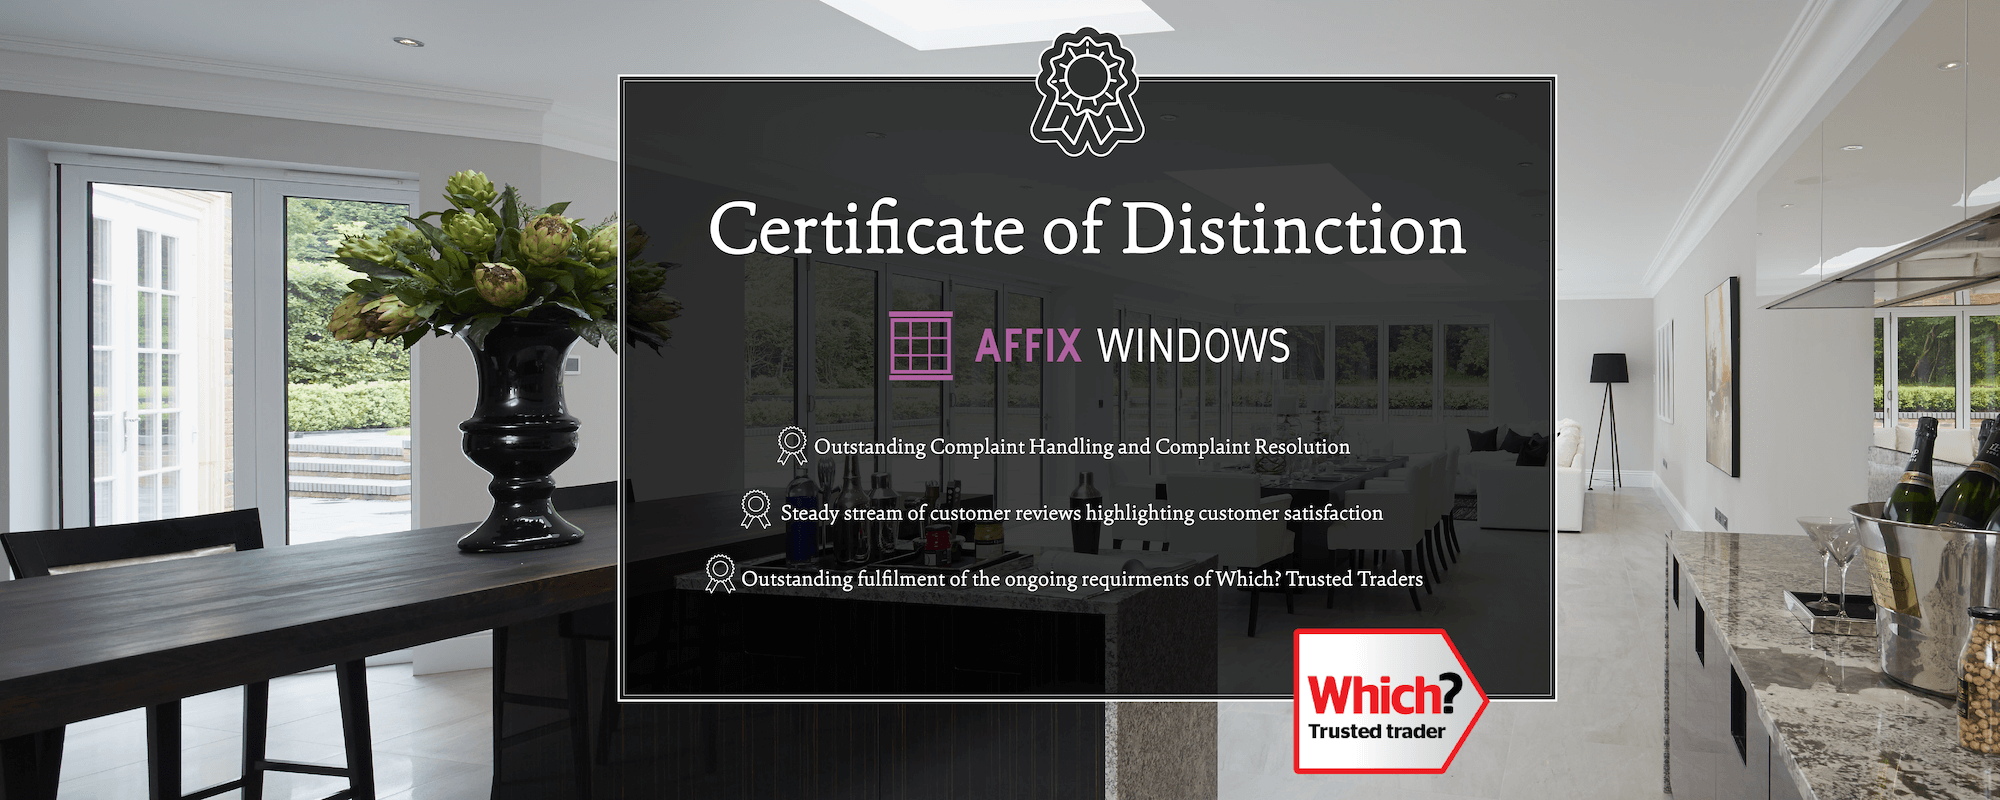 Affix Windows